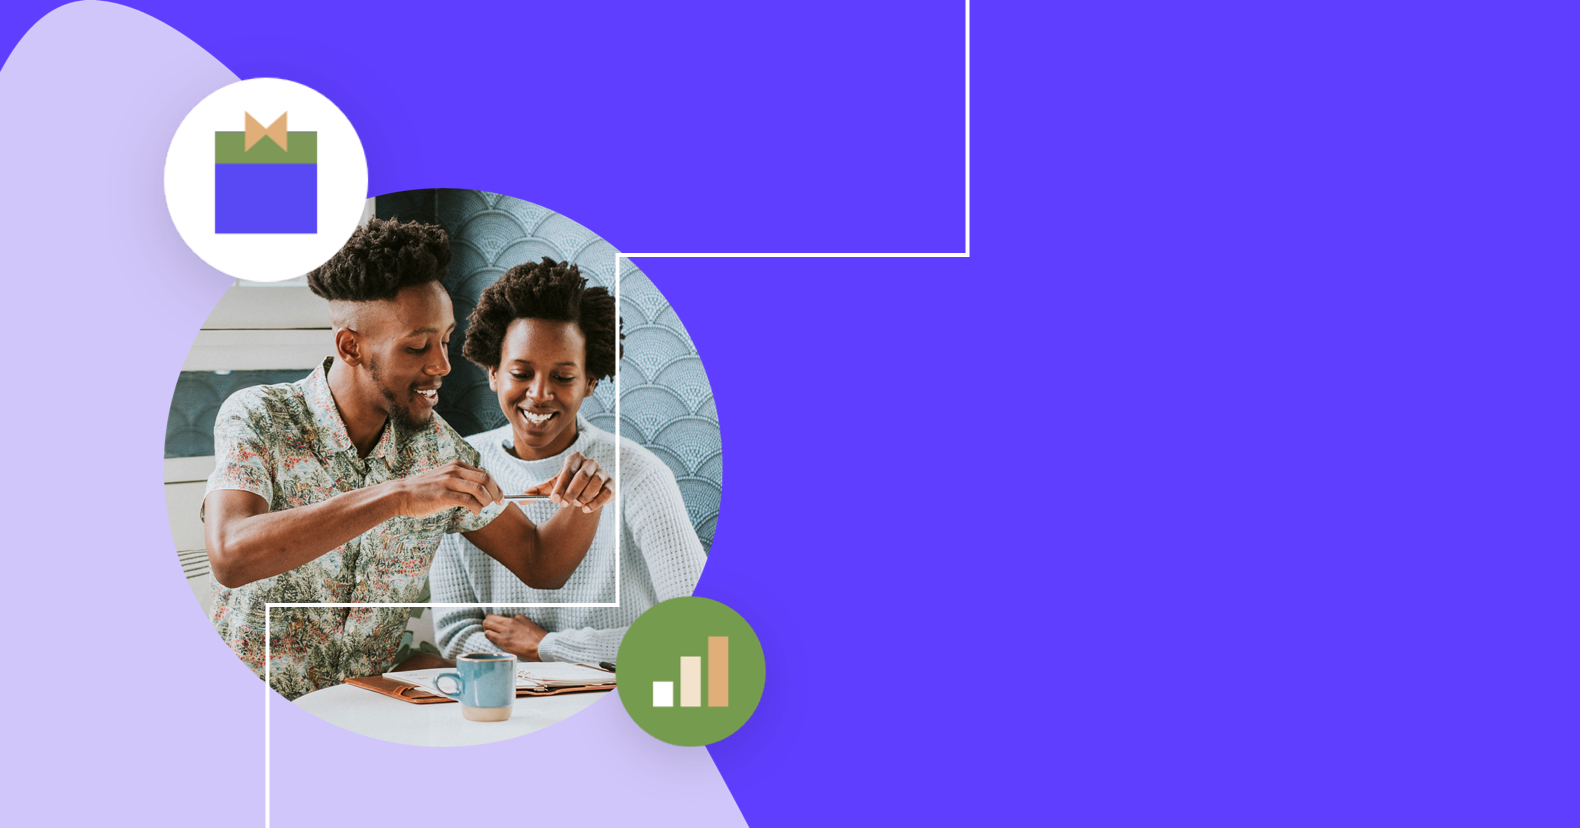 holiday marketing image shows a black man and woman sitting at a kitchen table taking a picture on their phone of a daily planner